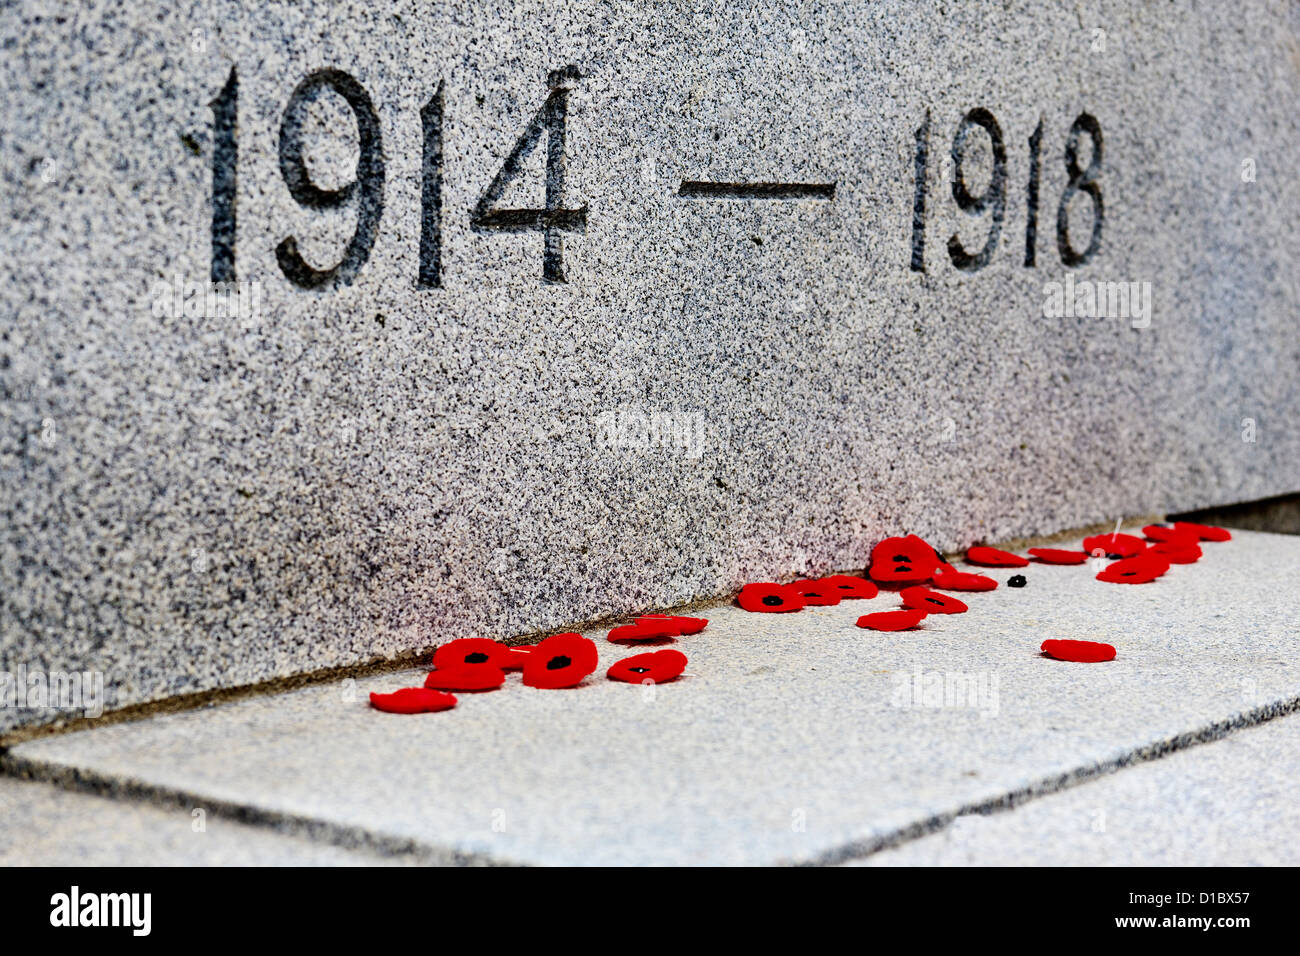 Poppies at Remembrance Day Service Nov 11 Canada - Stock Image